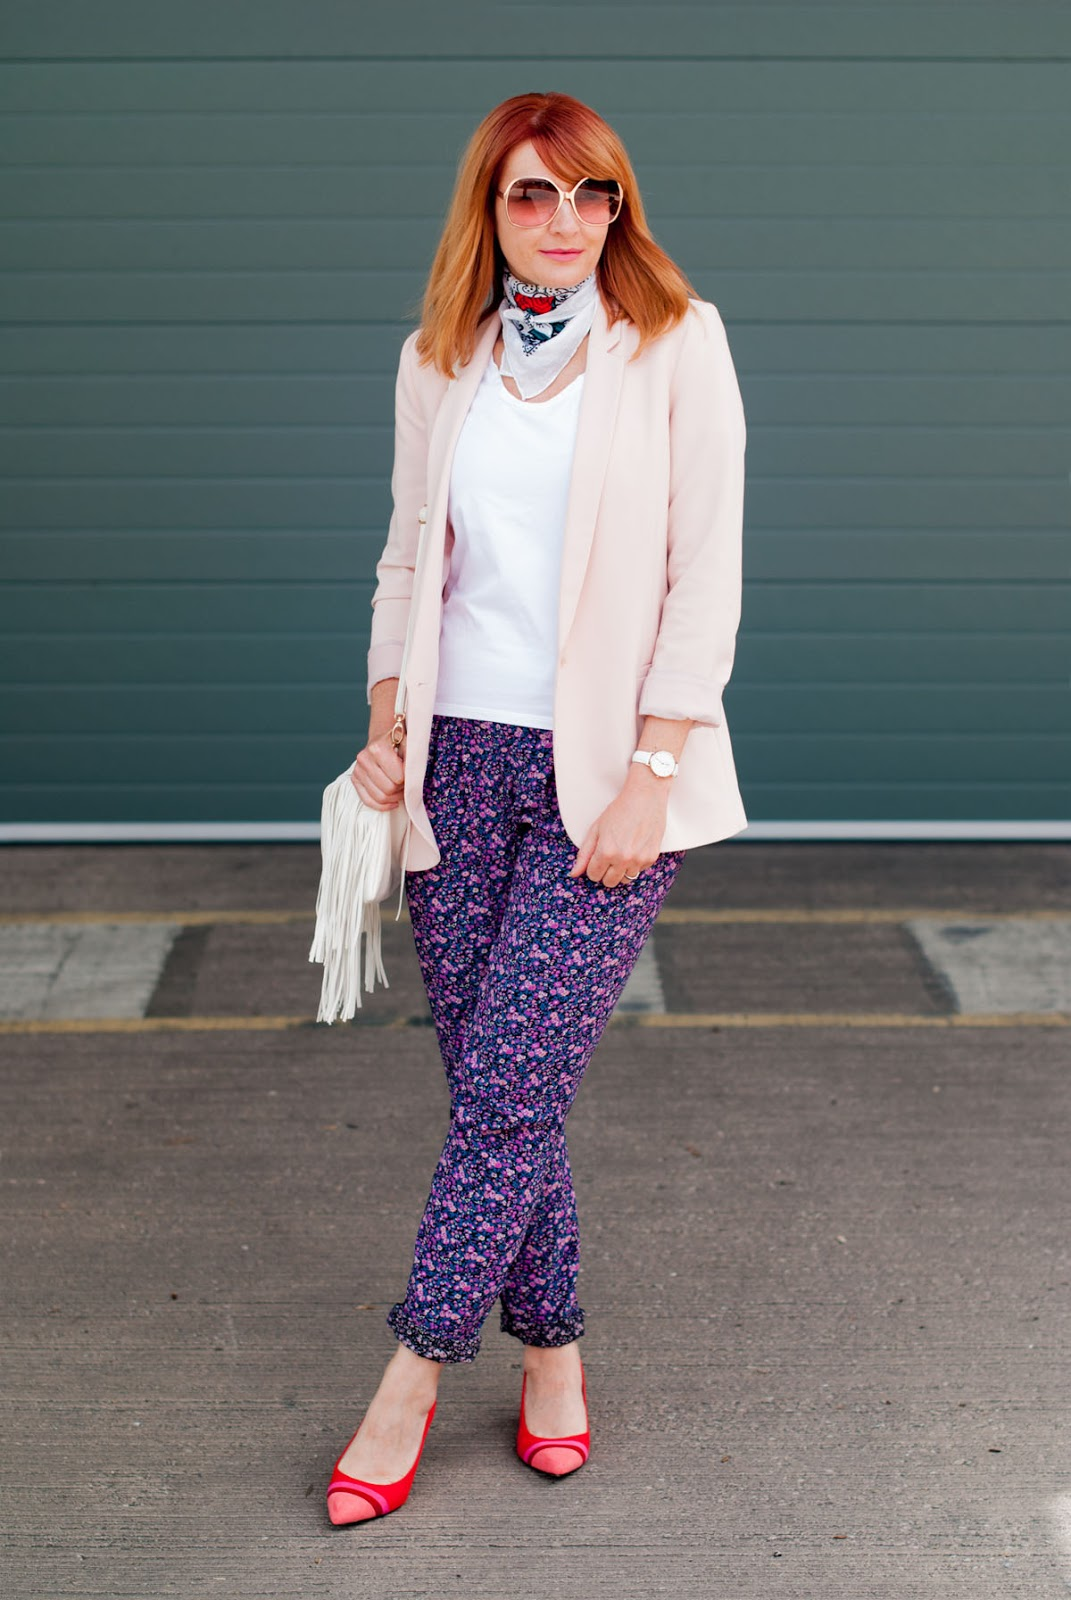 Summer dressing for cooler days: Pale pink blazer  loose floral trousers  red striped block heel shoes  neck scarf  white fringe cross body bag | Not Dressed As Lamb, over 40 style